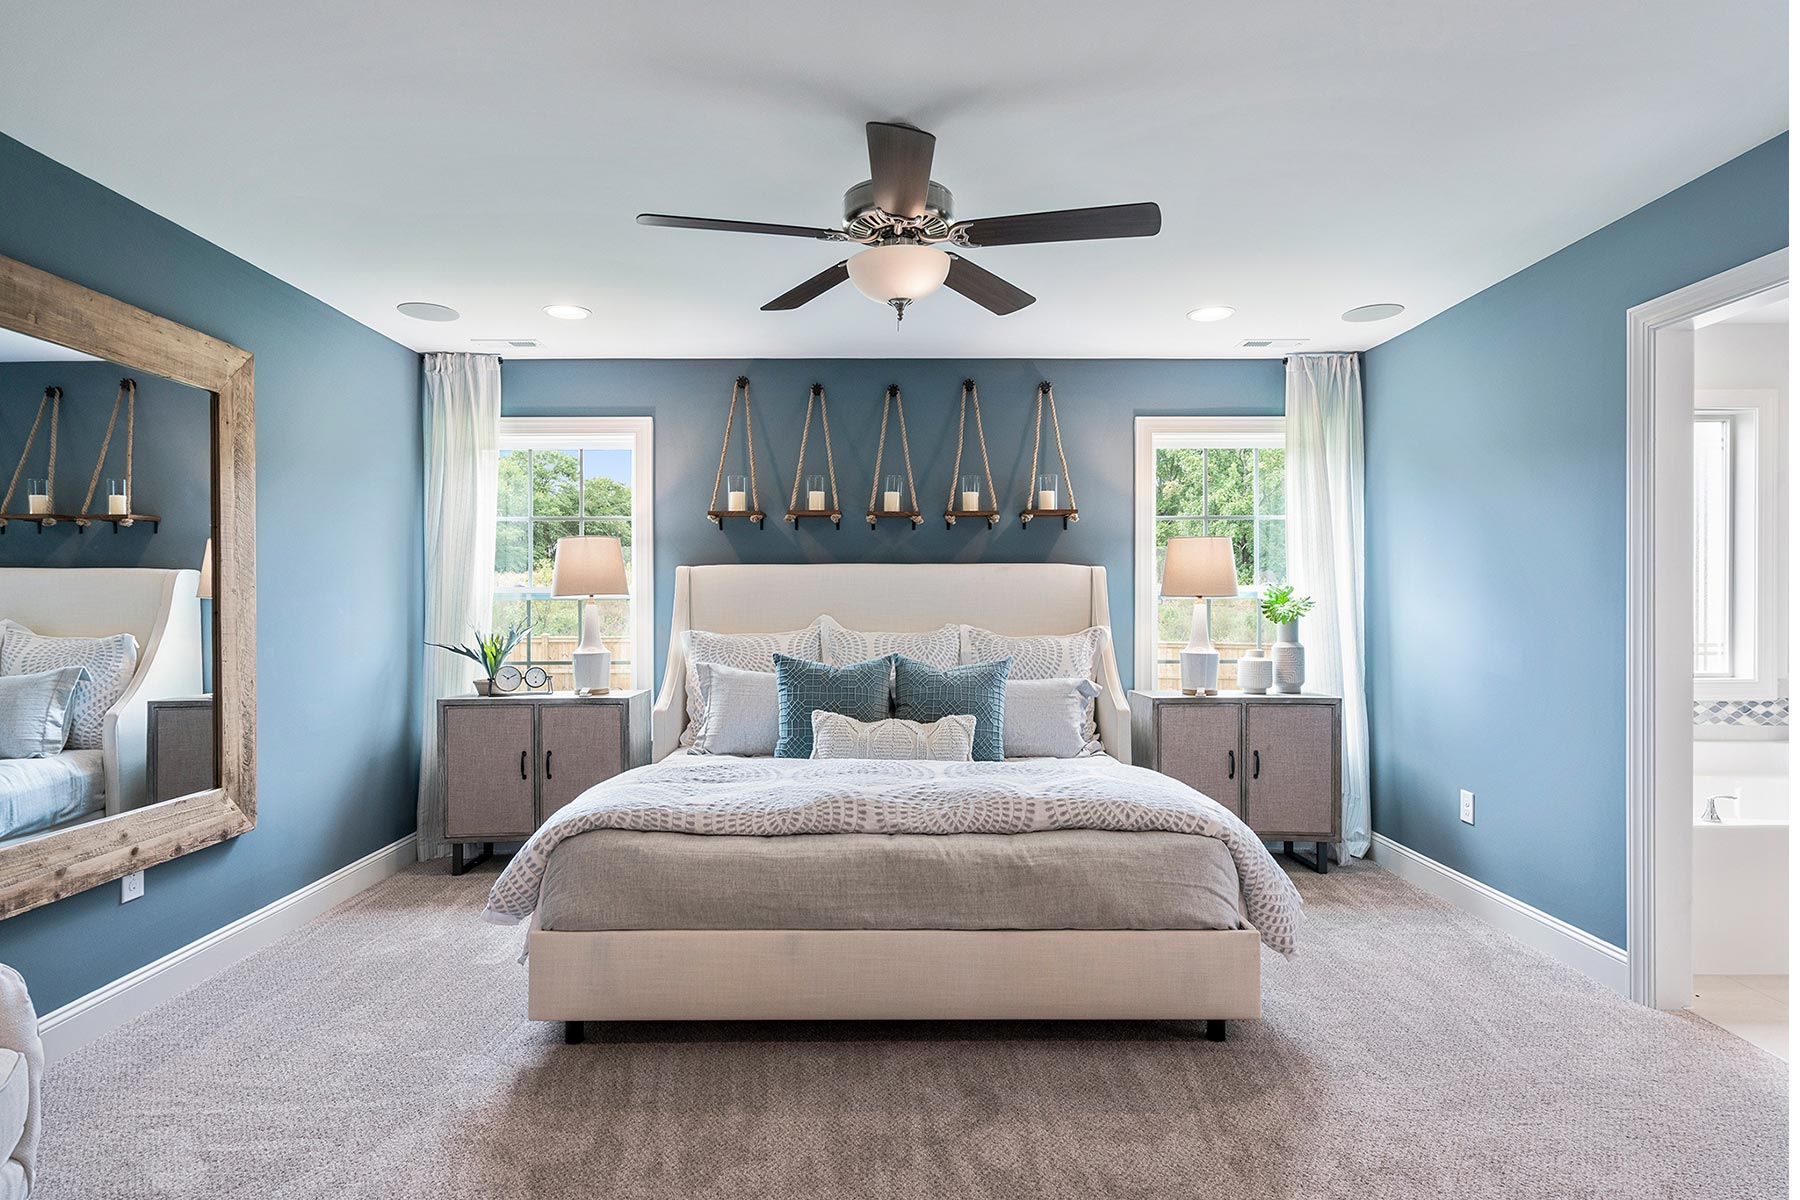 Bent Tree Bedroom in Fuquay-Varina North Carolina by Mattamy Homes